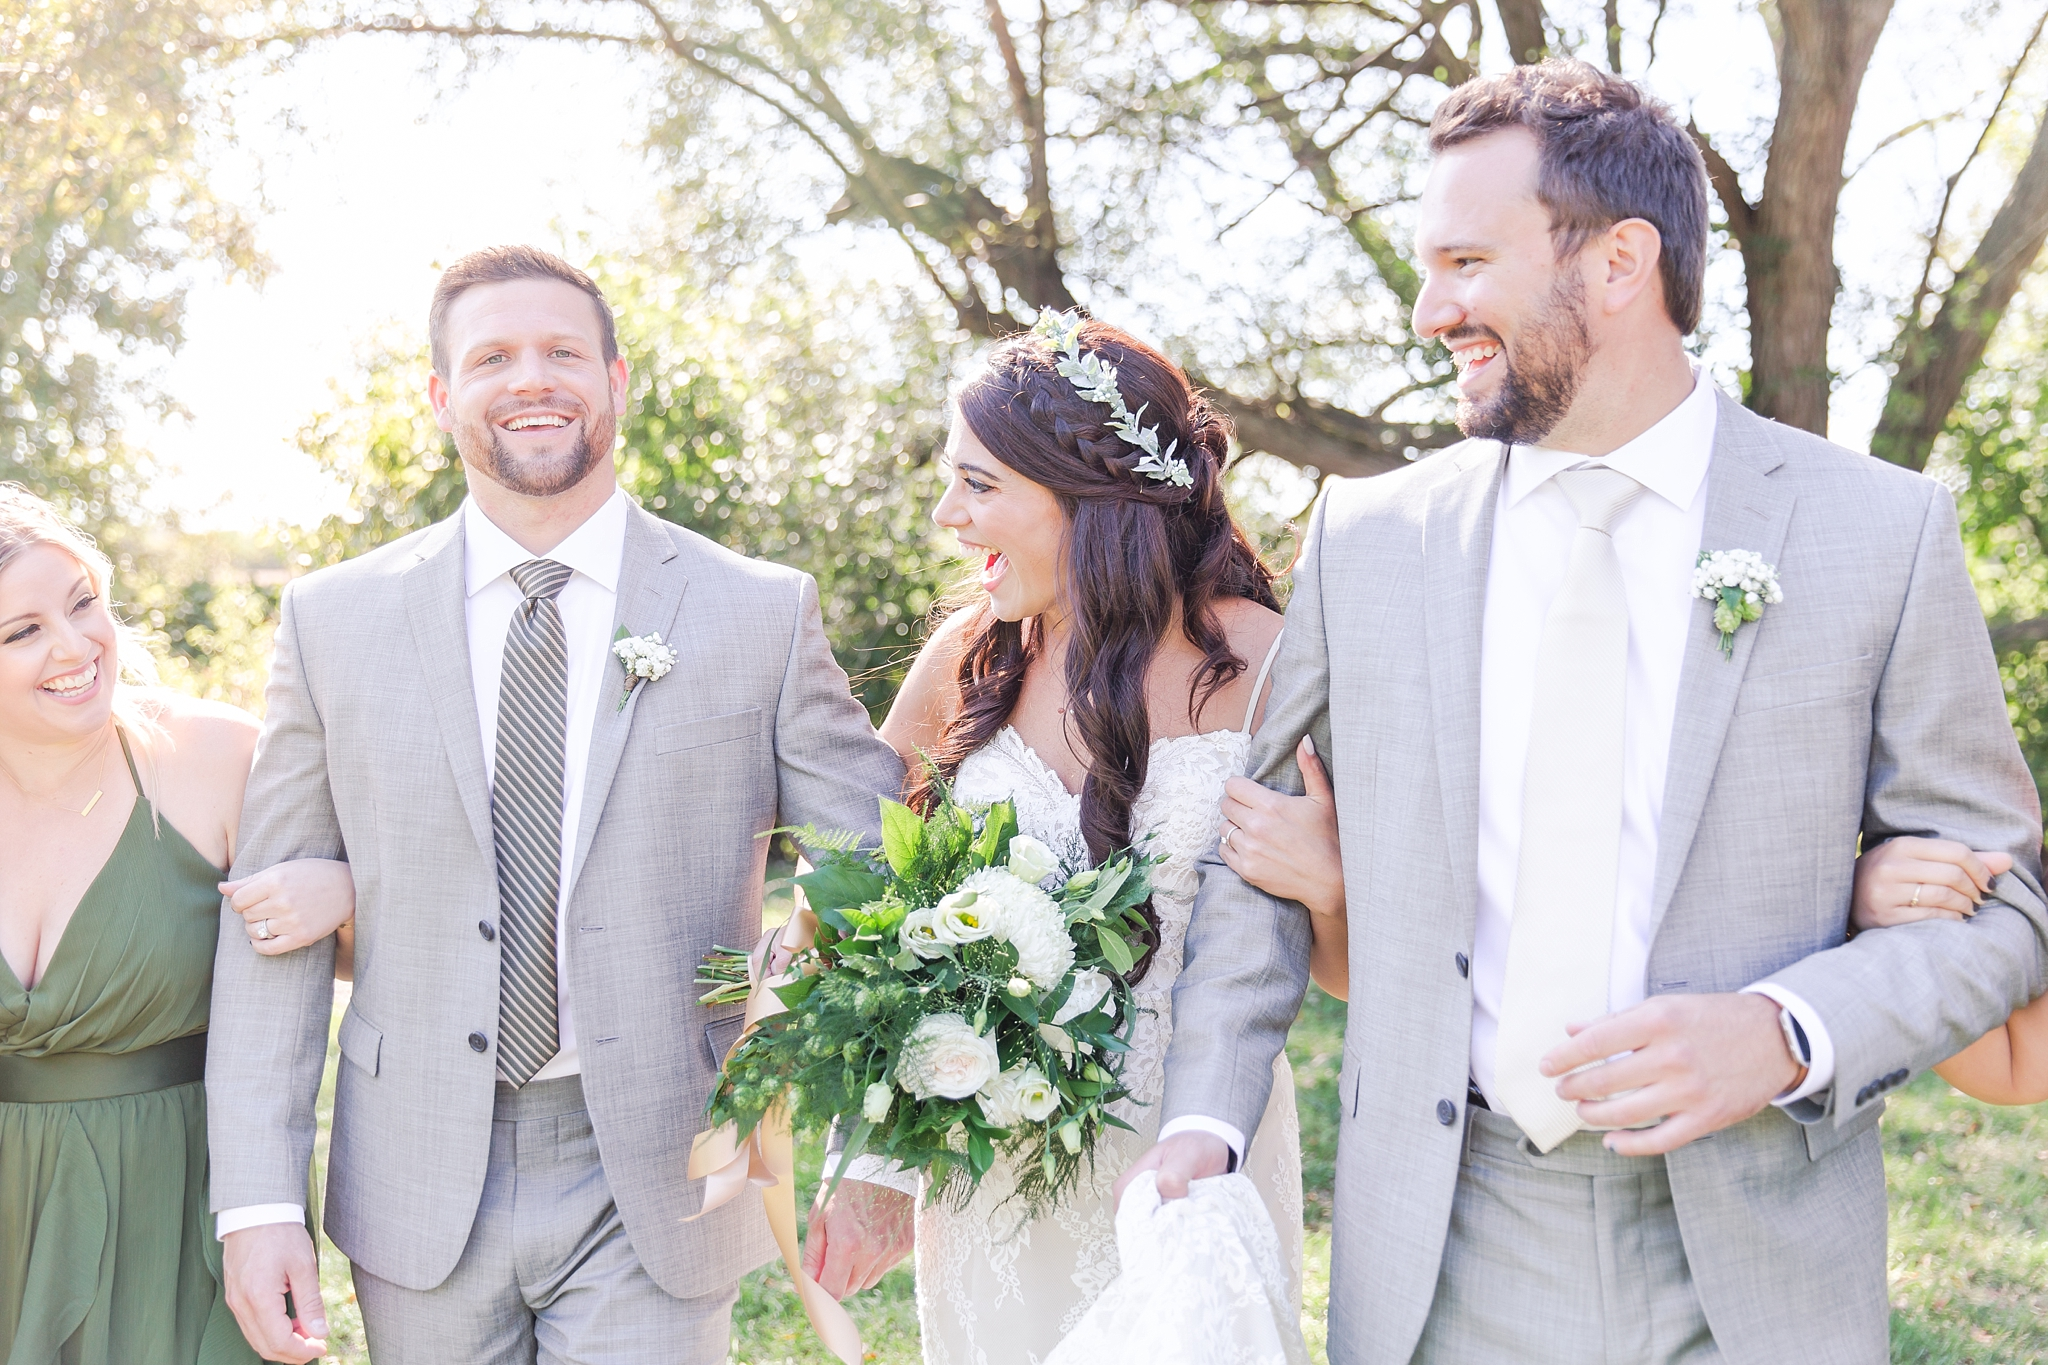 natural-rustic-wedding-photos-at-frutig-farms-the-valley-in-ann-arbor-michigan-by-courtney-carolyn-photography_0043.jpg